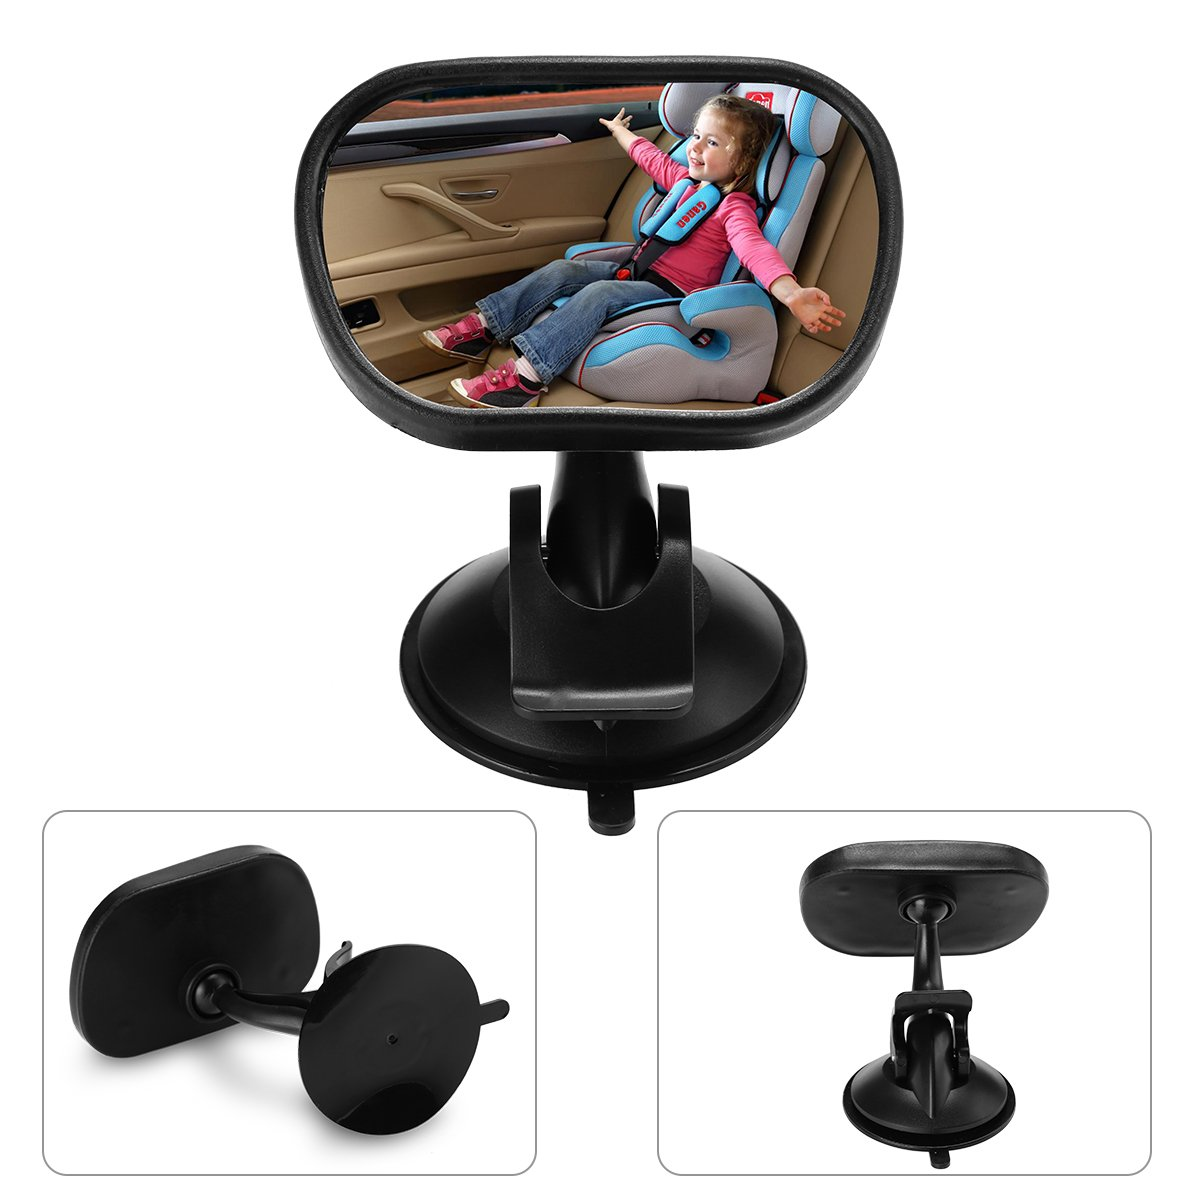 Ecbrt Baby Car Mirror, Safety & Adjustable Rotation Shatter-proof Child Rear View Mirror, Sucktion Cup on Windshield or Clip on Car Sun Visor